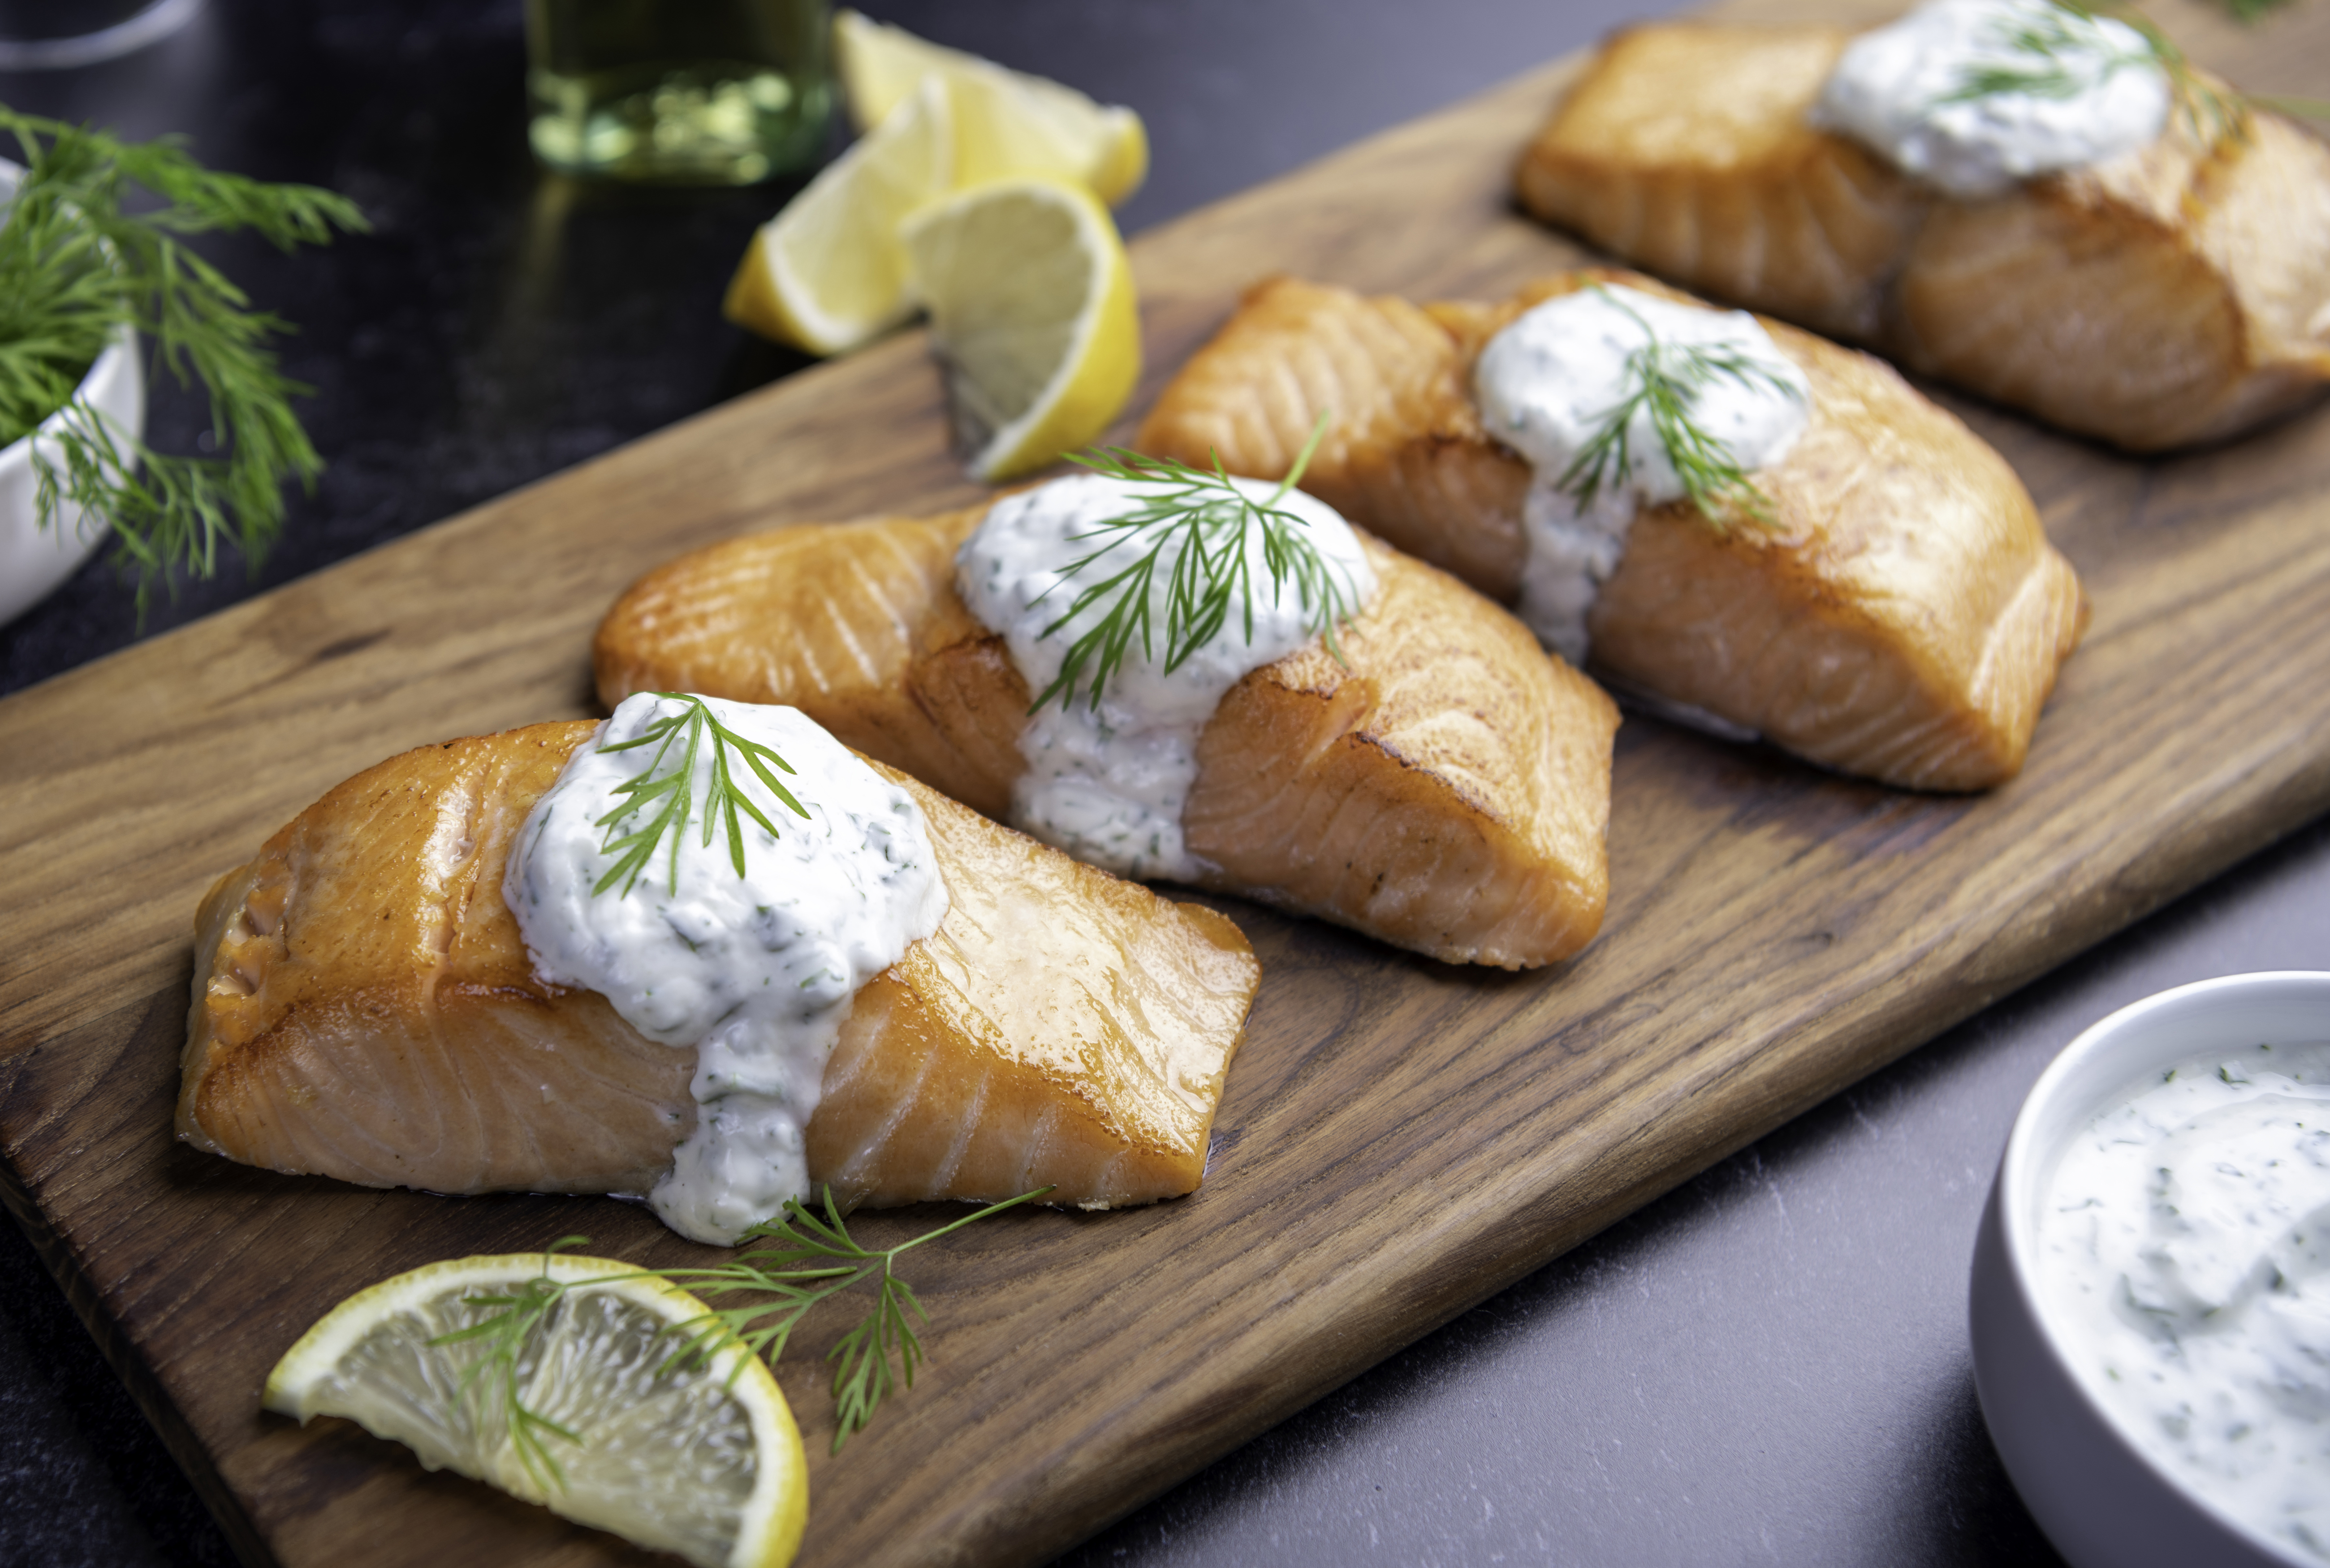 Grilled Salmon with Creamy Herb Sauce